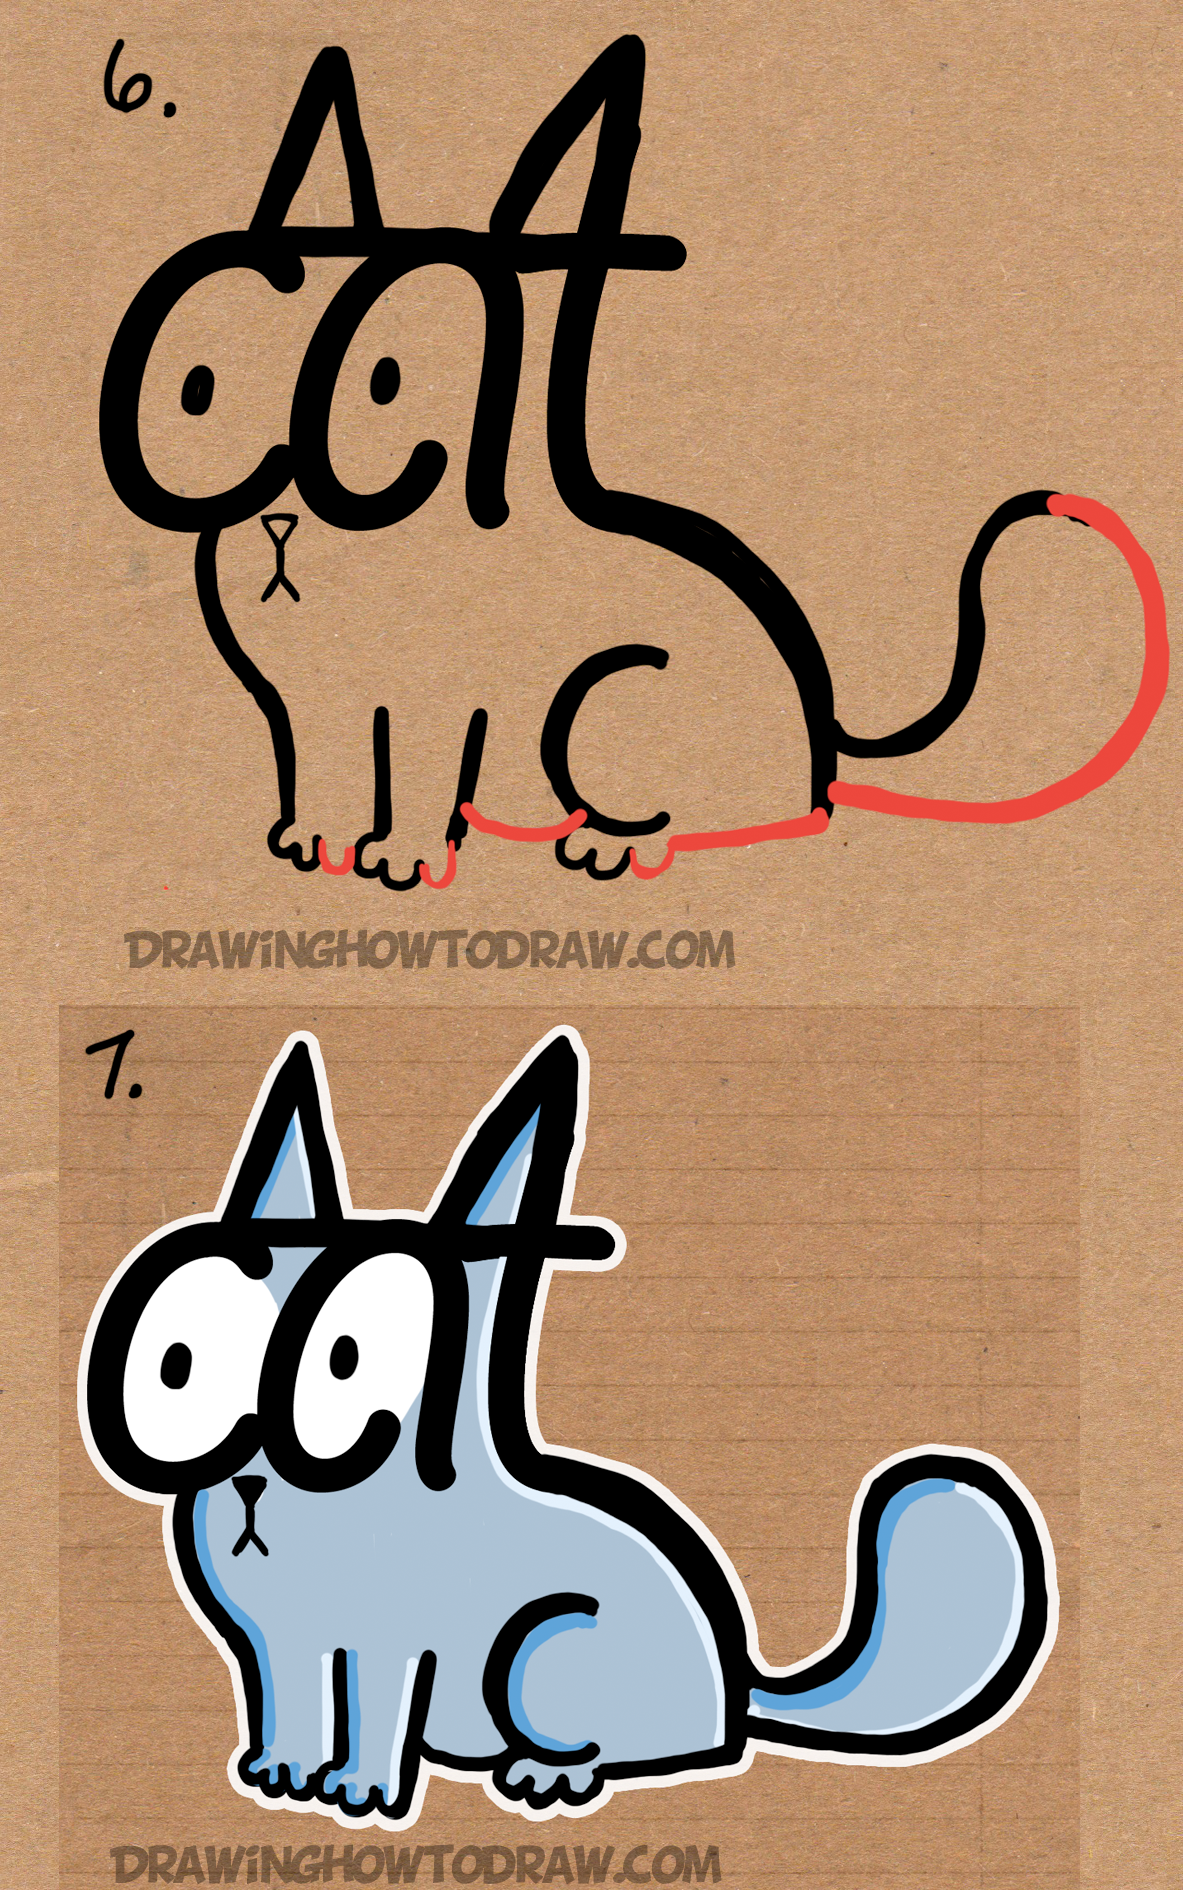 How to Draw a Cartoon Cat Using the Word CAT Easy Steps Tutorial for Kids